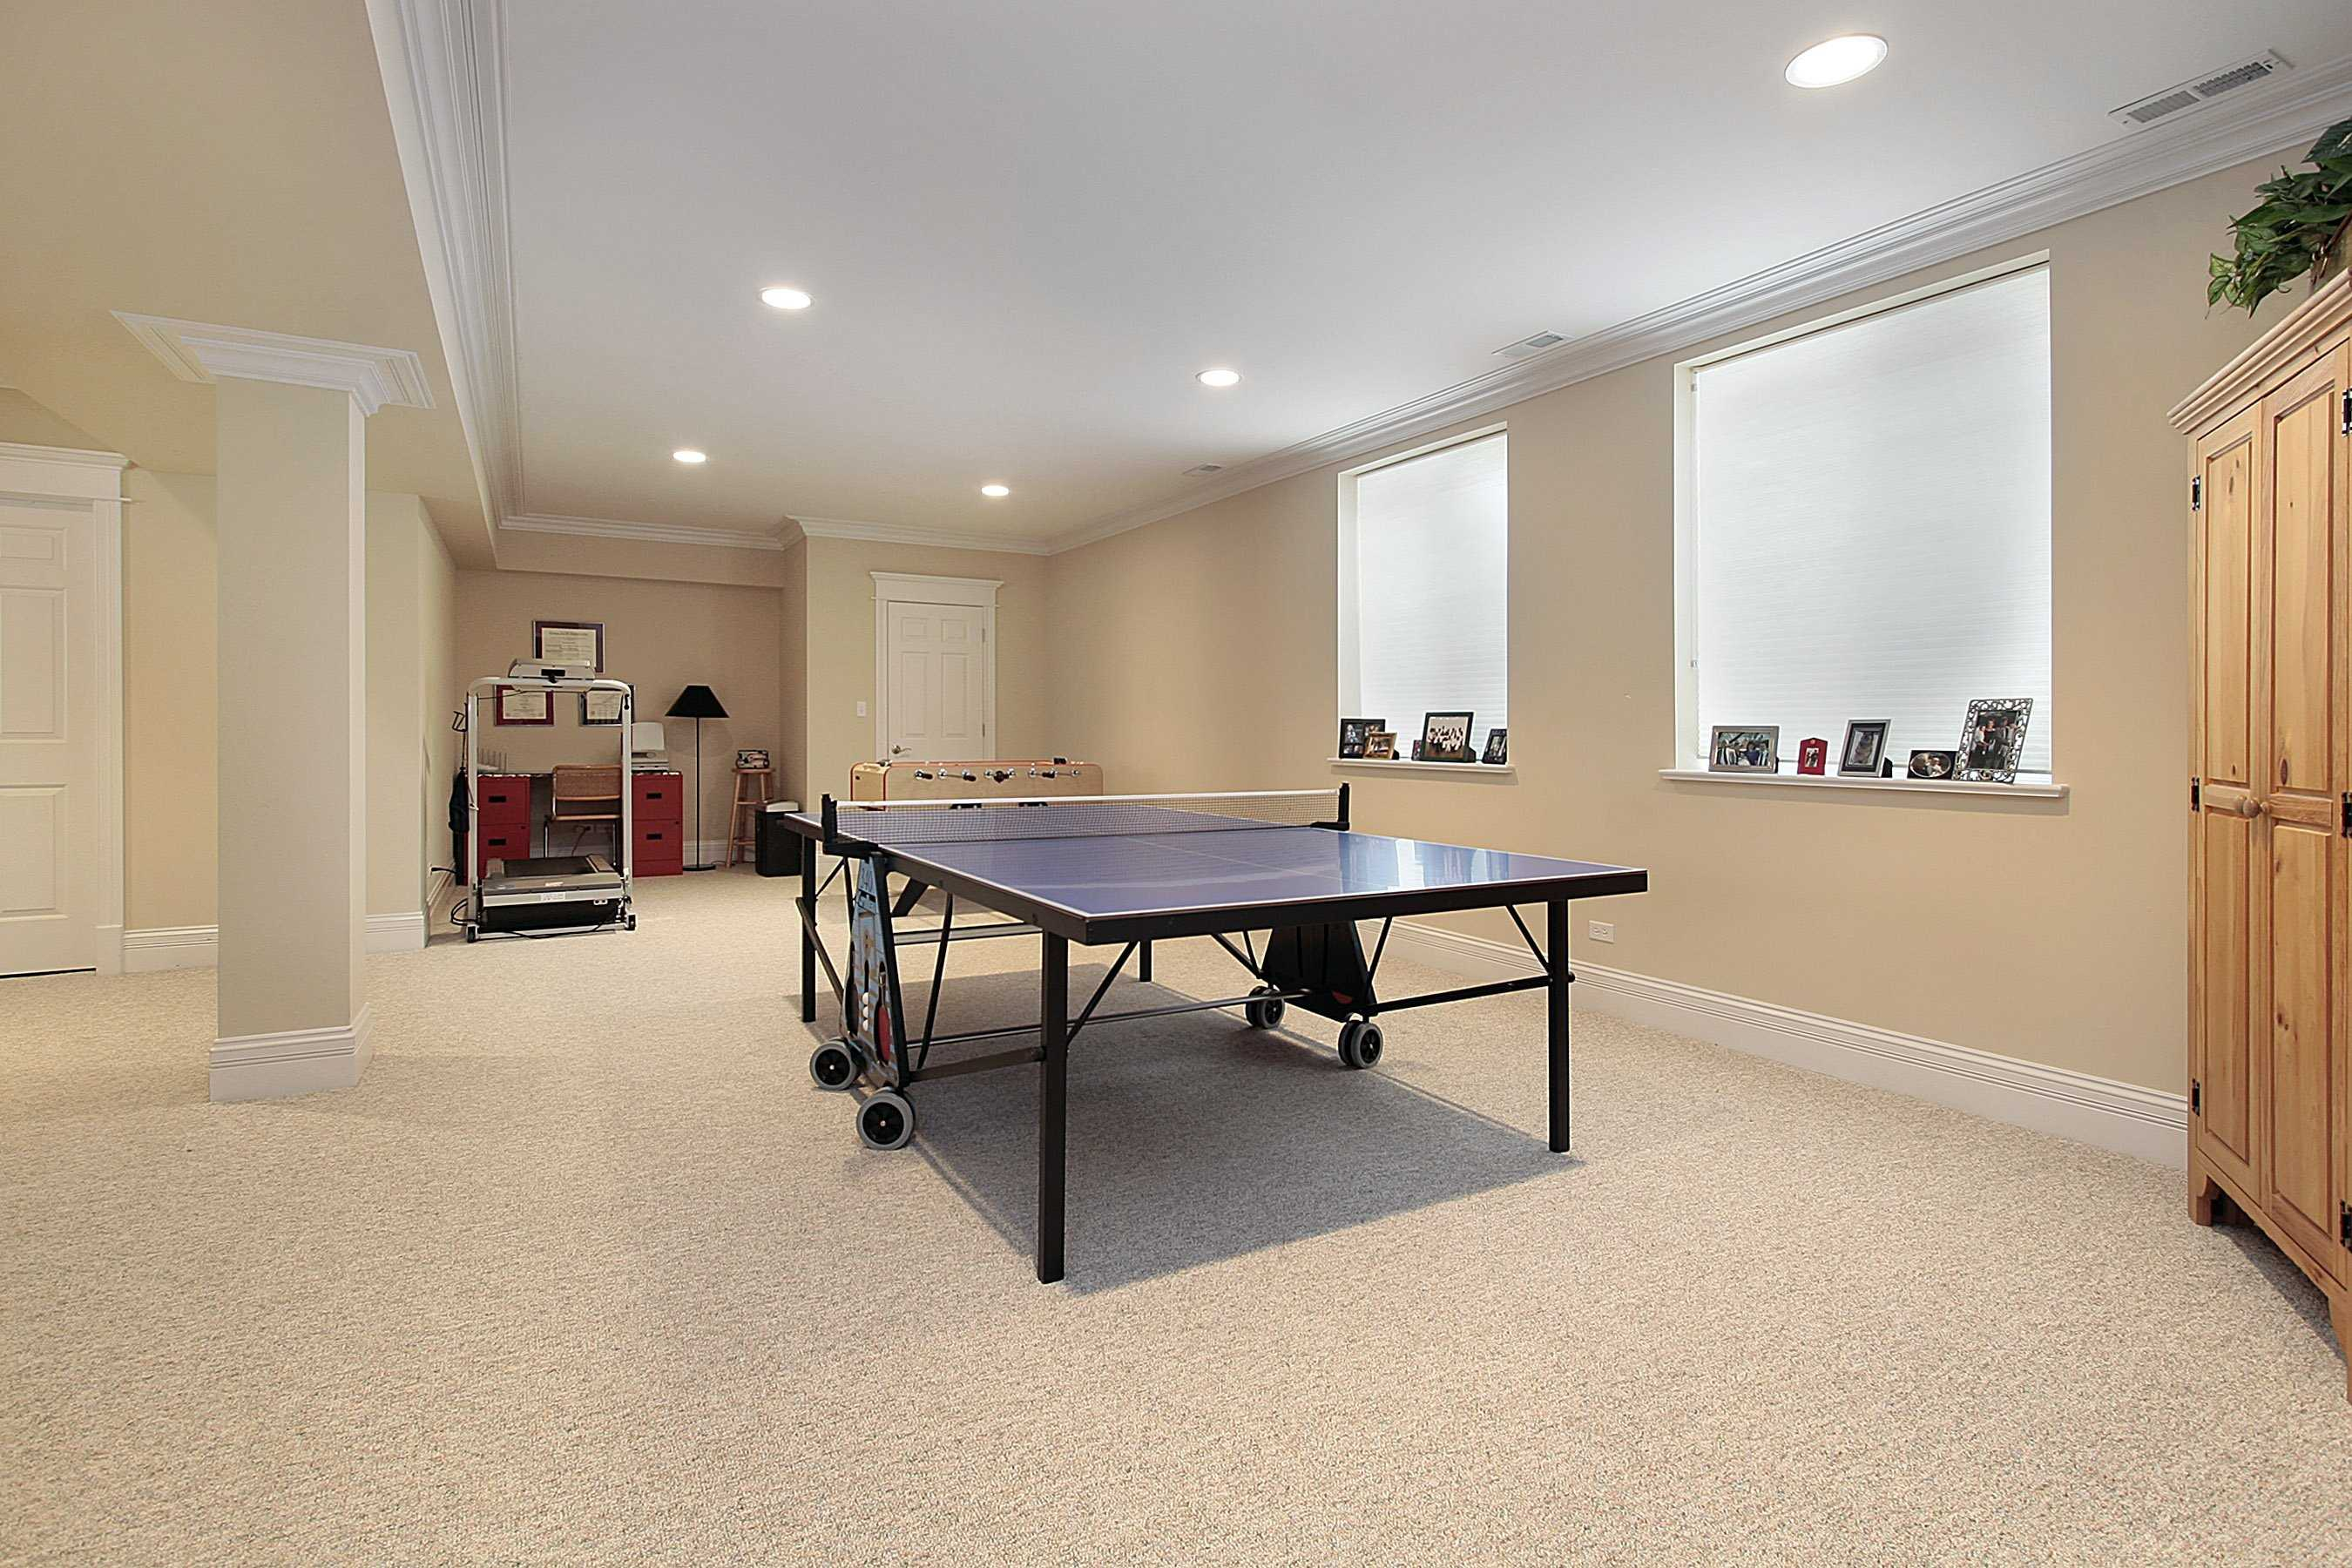 Basement Room Ideas 30 Basement Remodeling Ideas & Inspiration